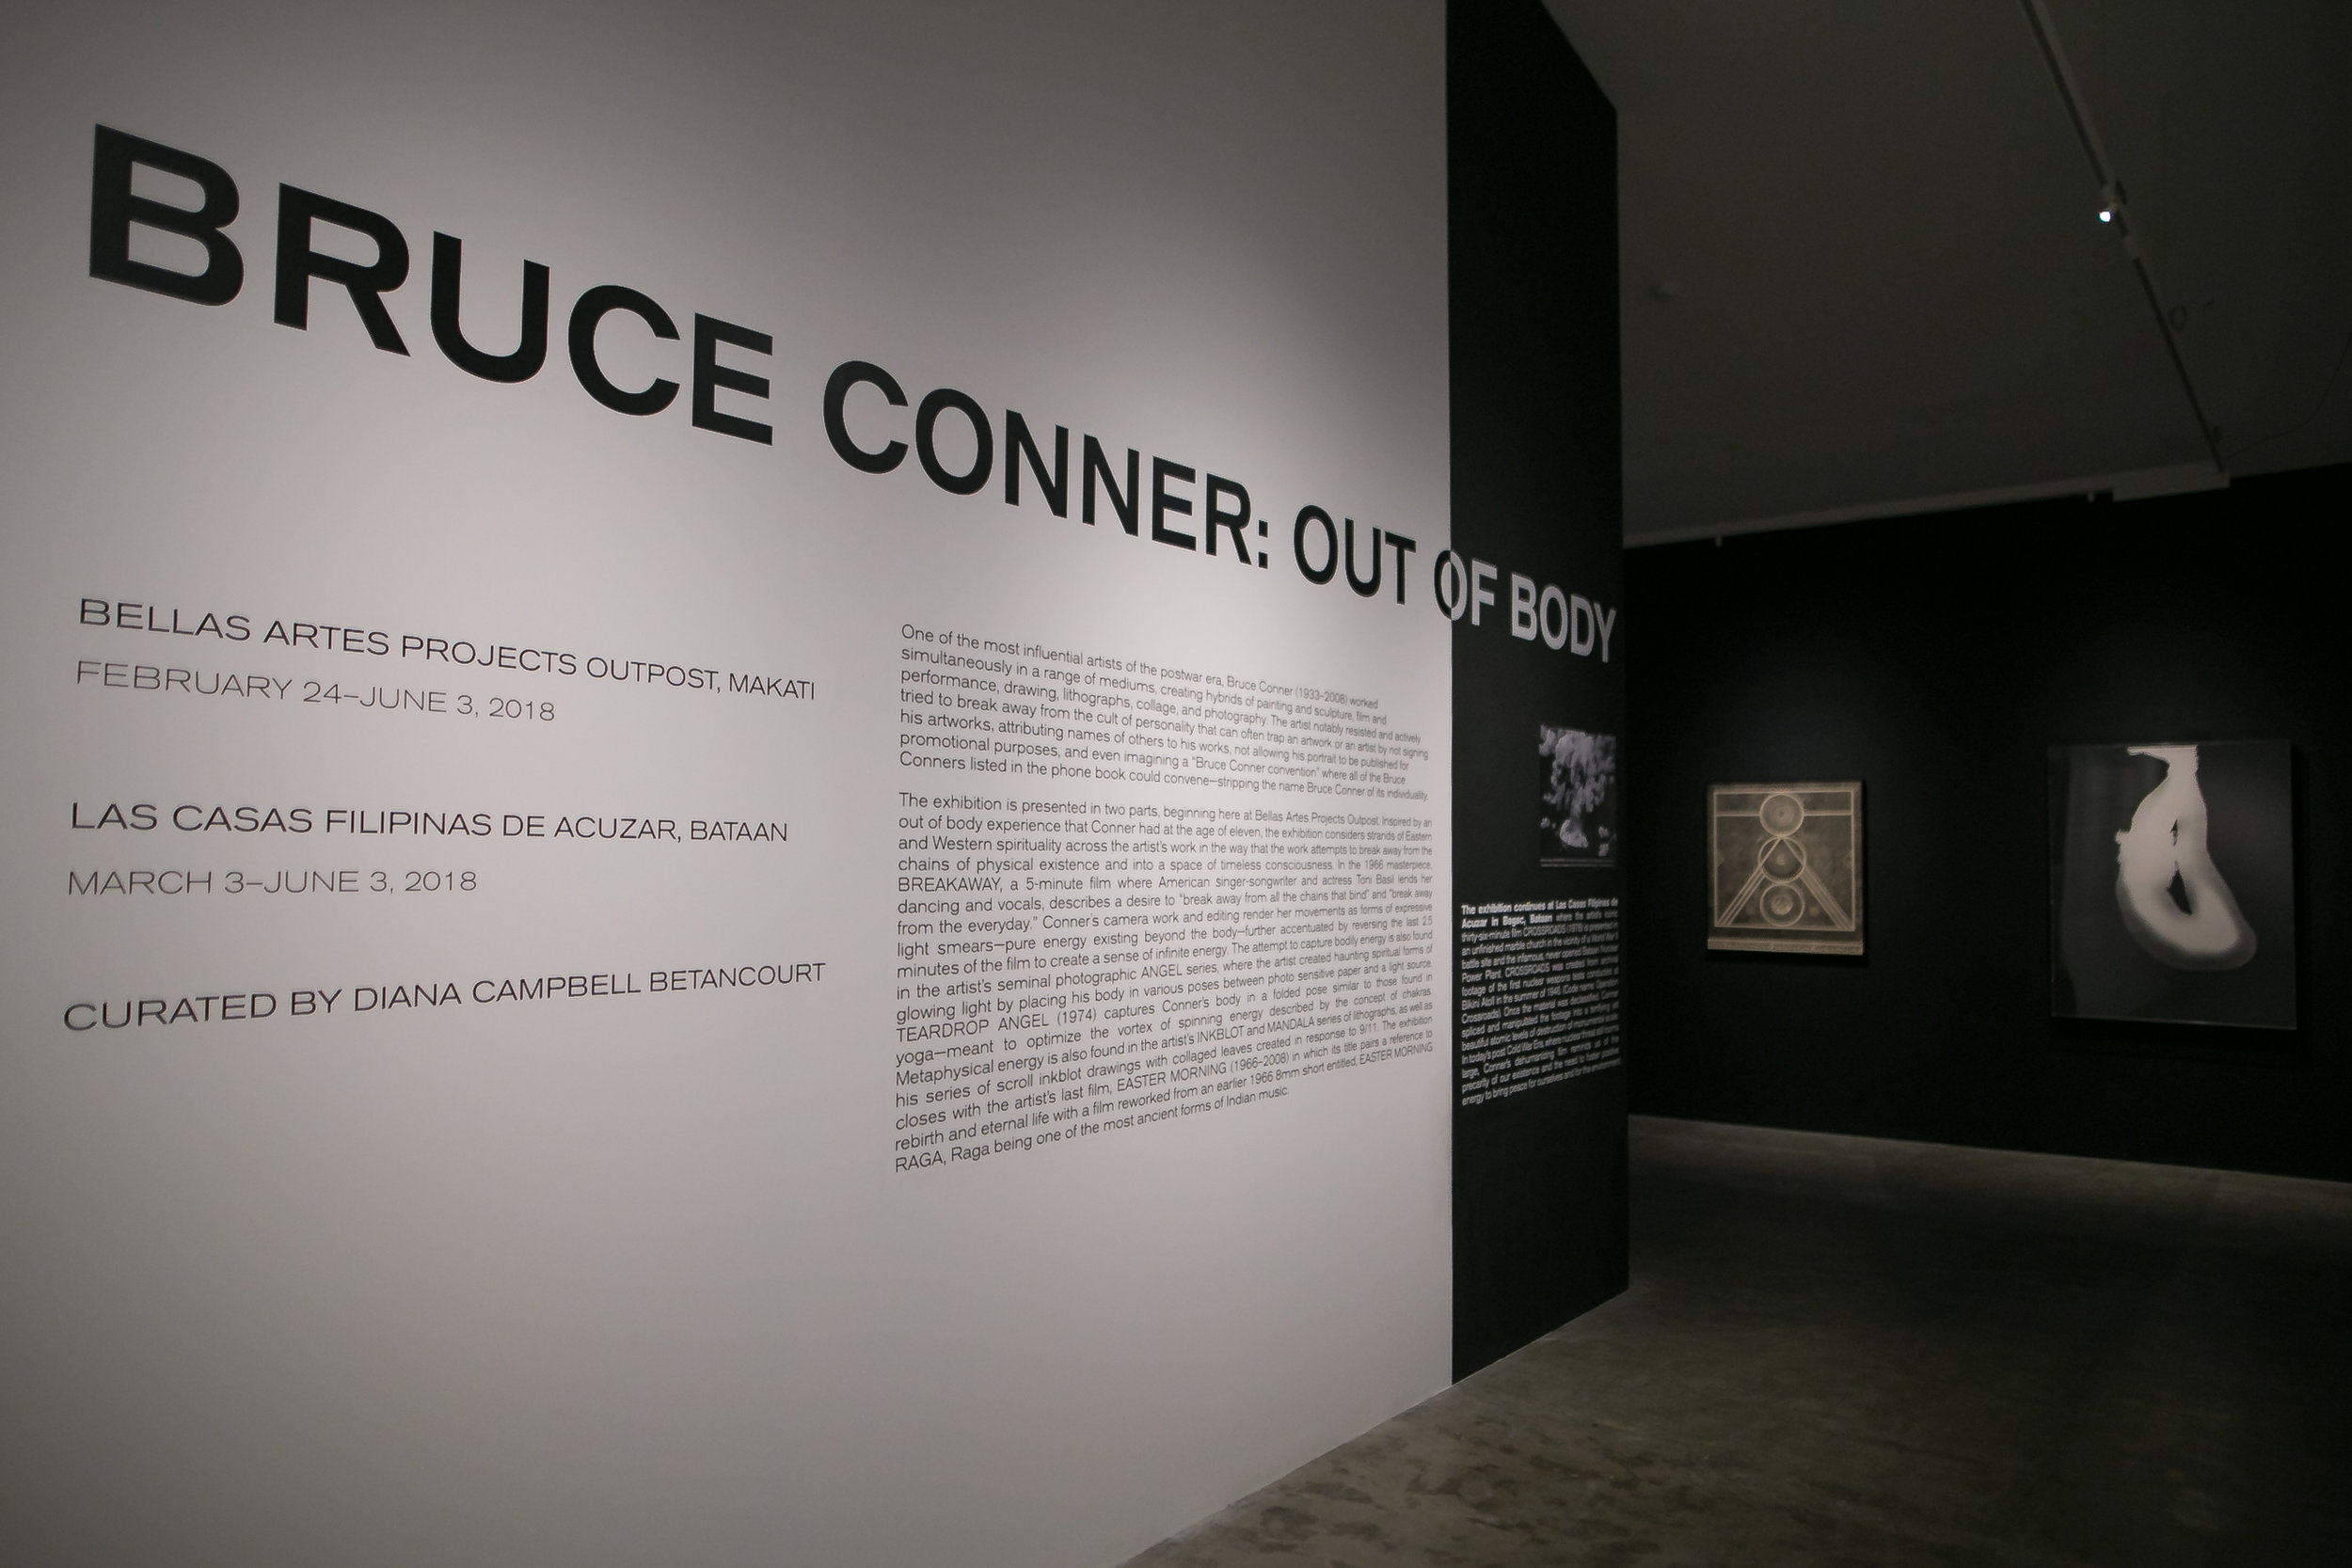 16-Bruce Conner_BAP Outpost Installation_WallIntro_PhotobyToiaAvenido-hd.jpg